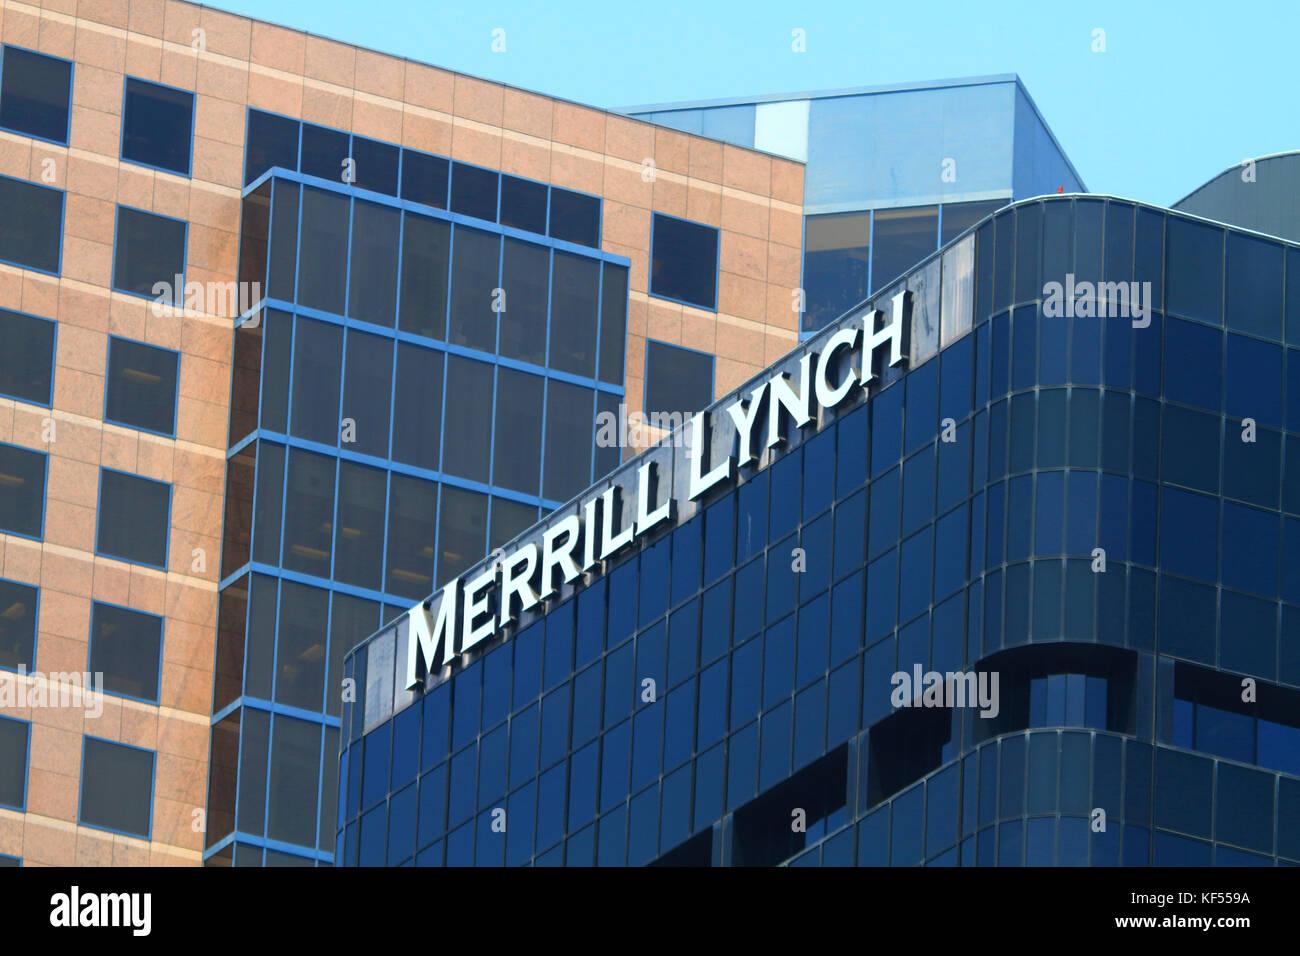 merrill lynch Definition of merrill lynch: financial advisory and brokerage company, which  was acquired by bank of america in 2008 during the height of the financial crisis.